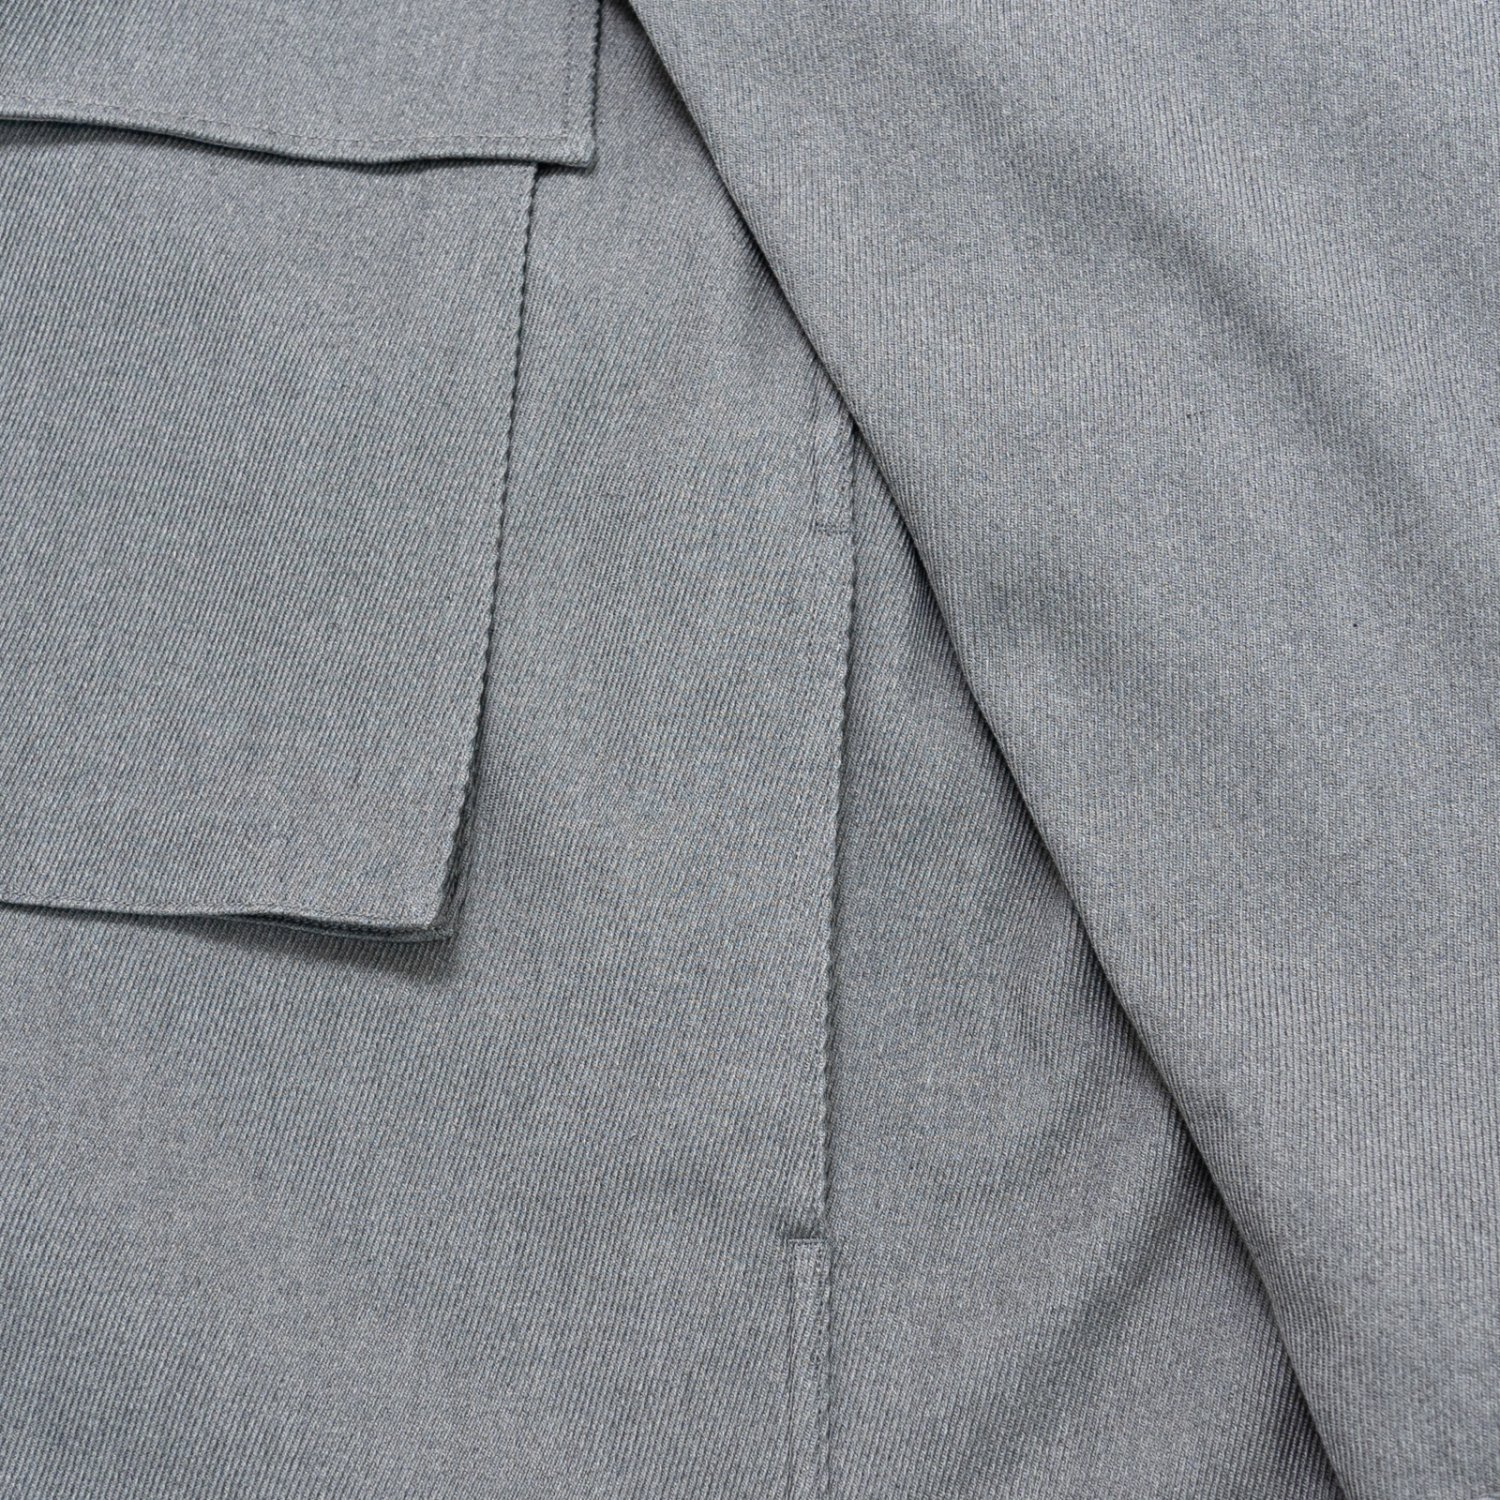 Graphpaper * Hard Twill Fatigue Jacket * Heather Gray